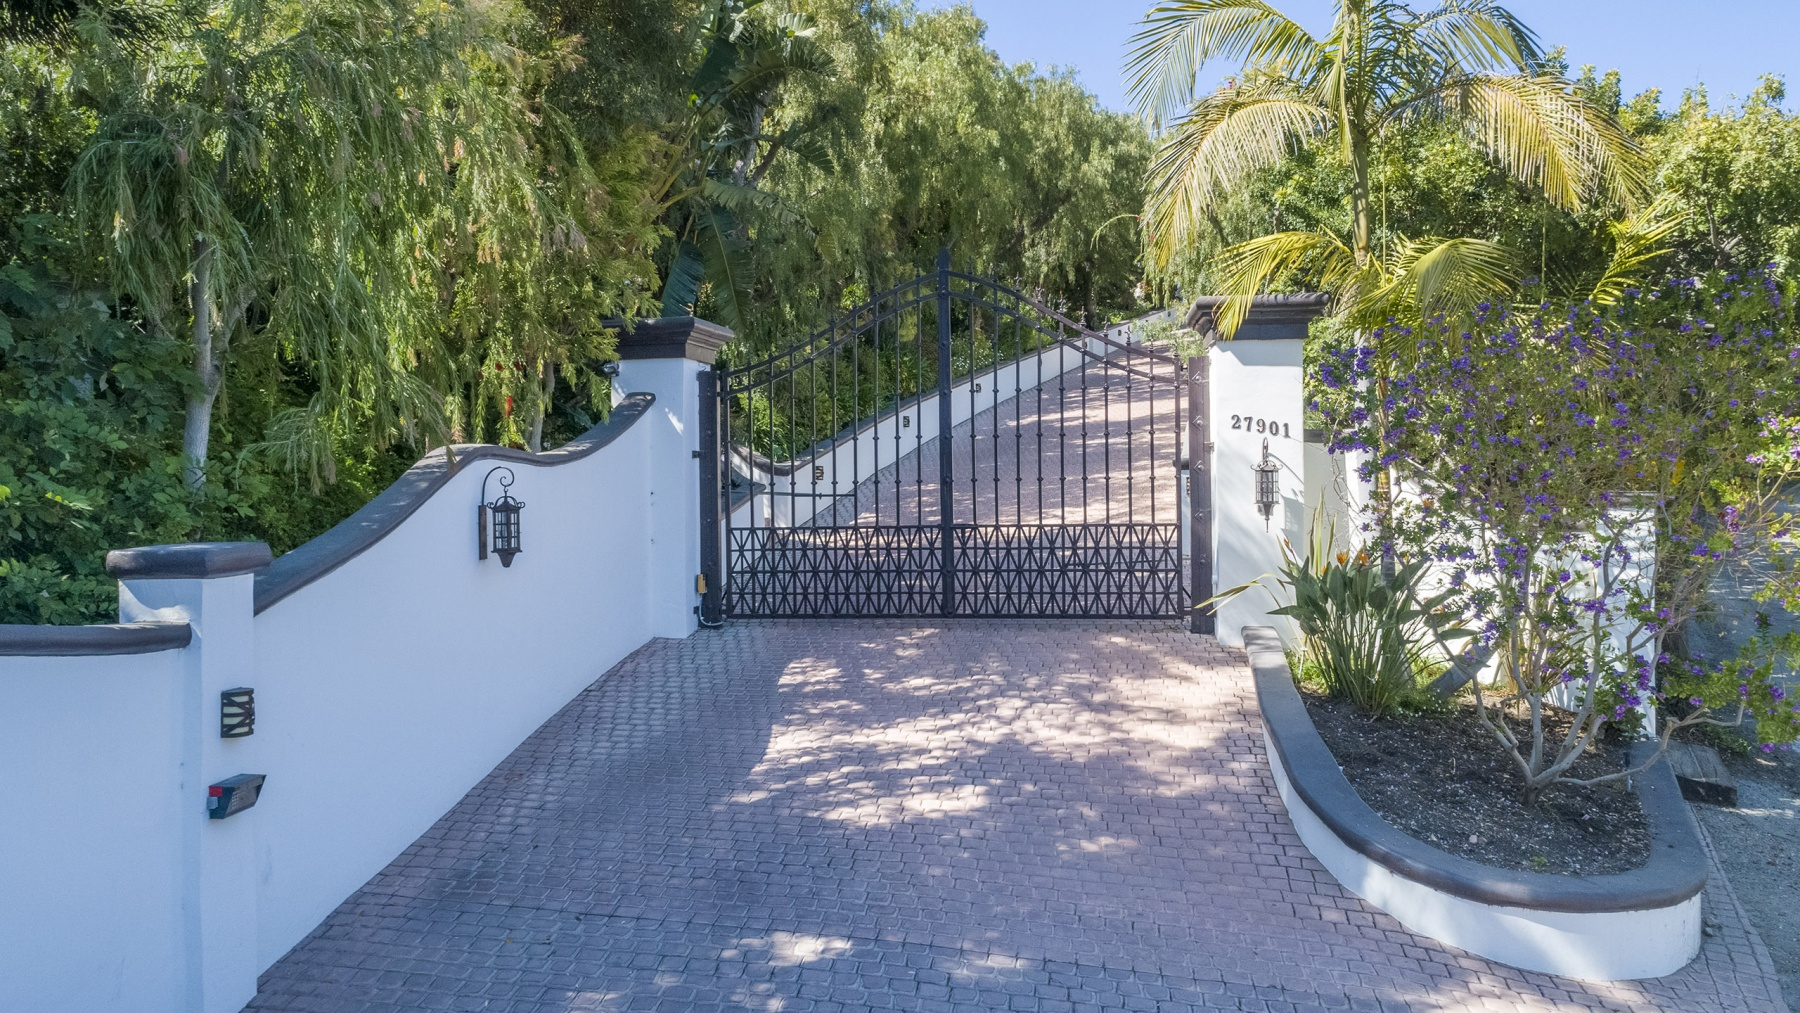 BEACH-COTTAGE-GATE-2560